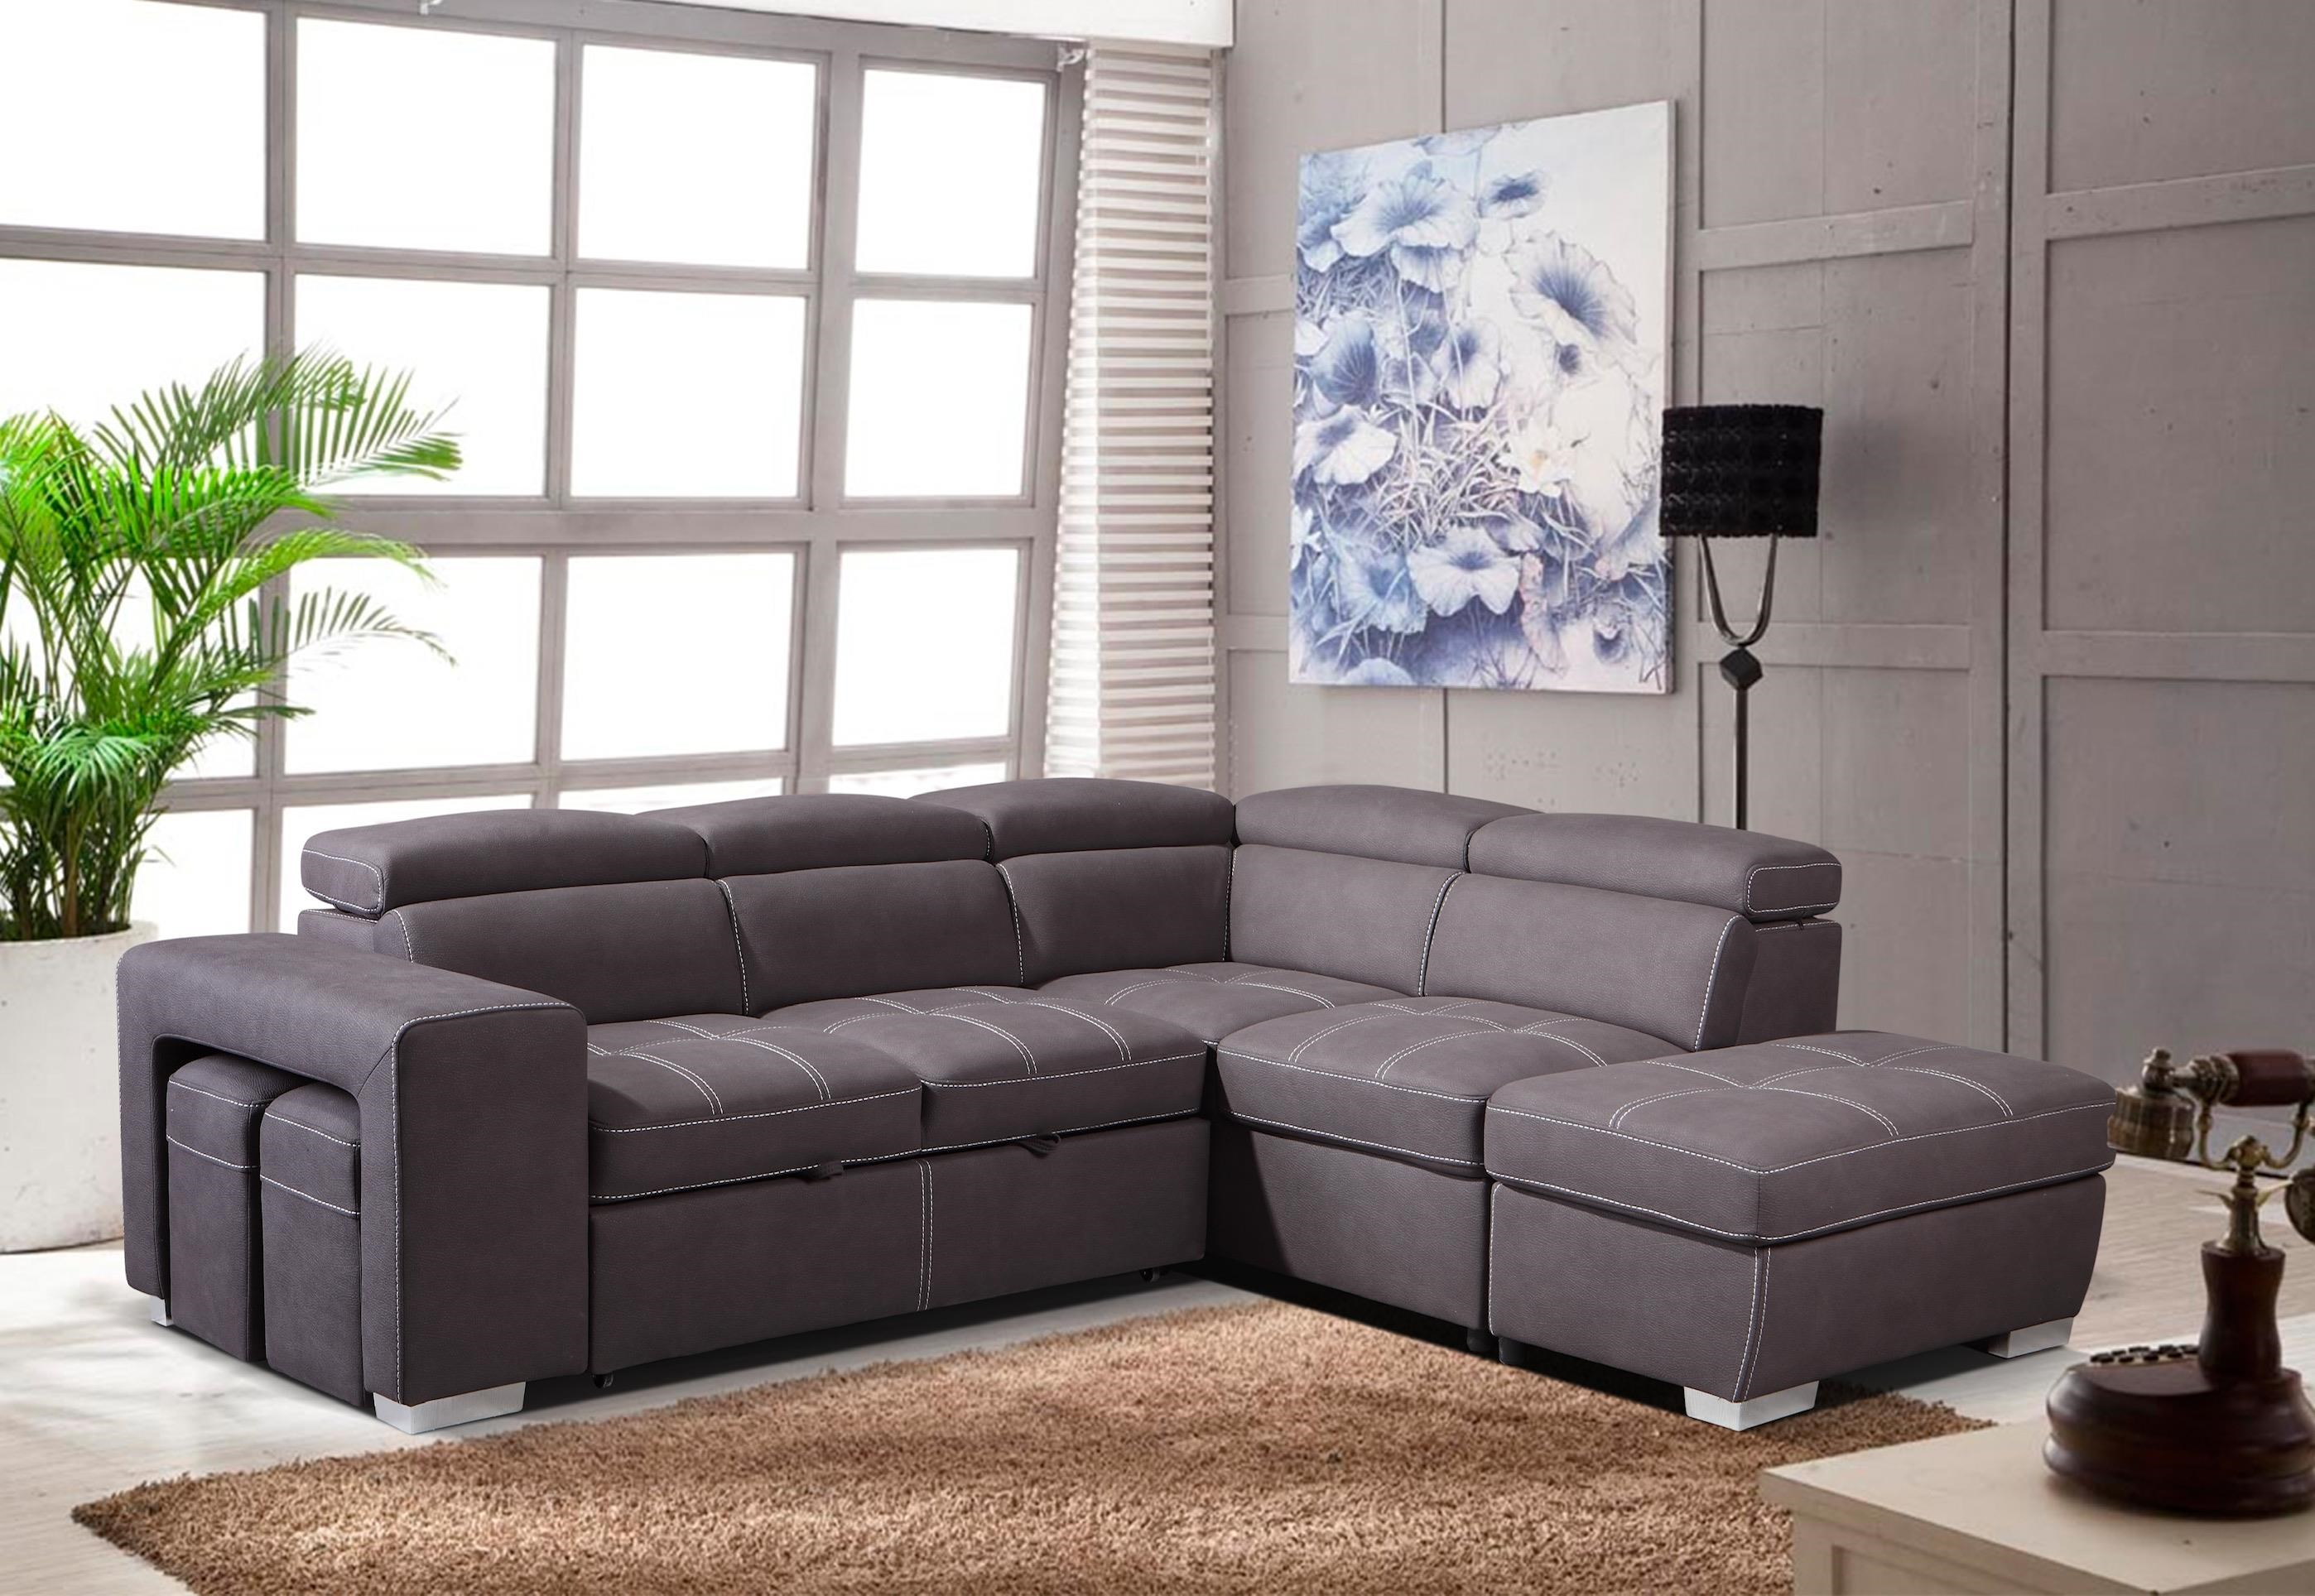 POSITANO Sectional by Amalfi Home Furniture at HomeWorld Furniture